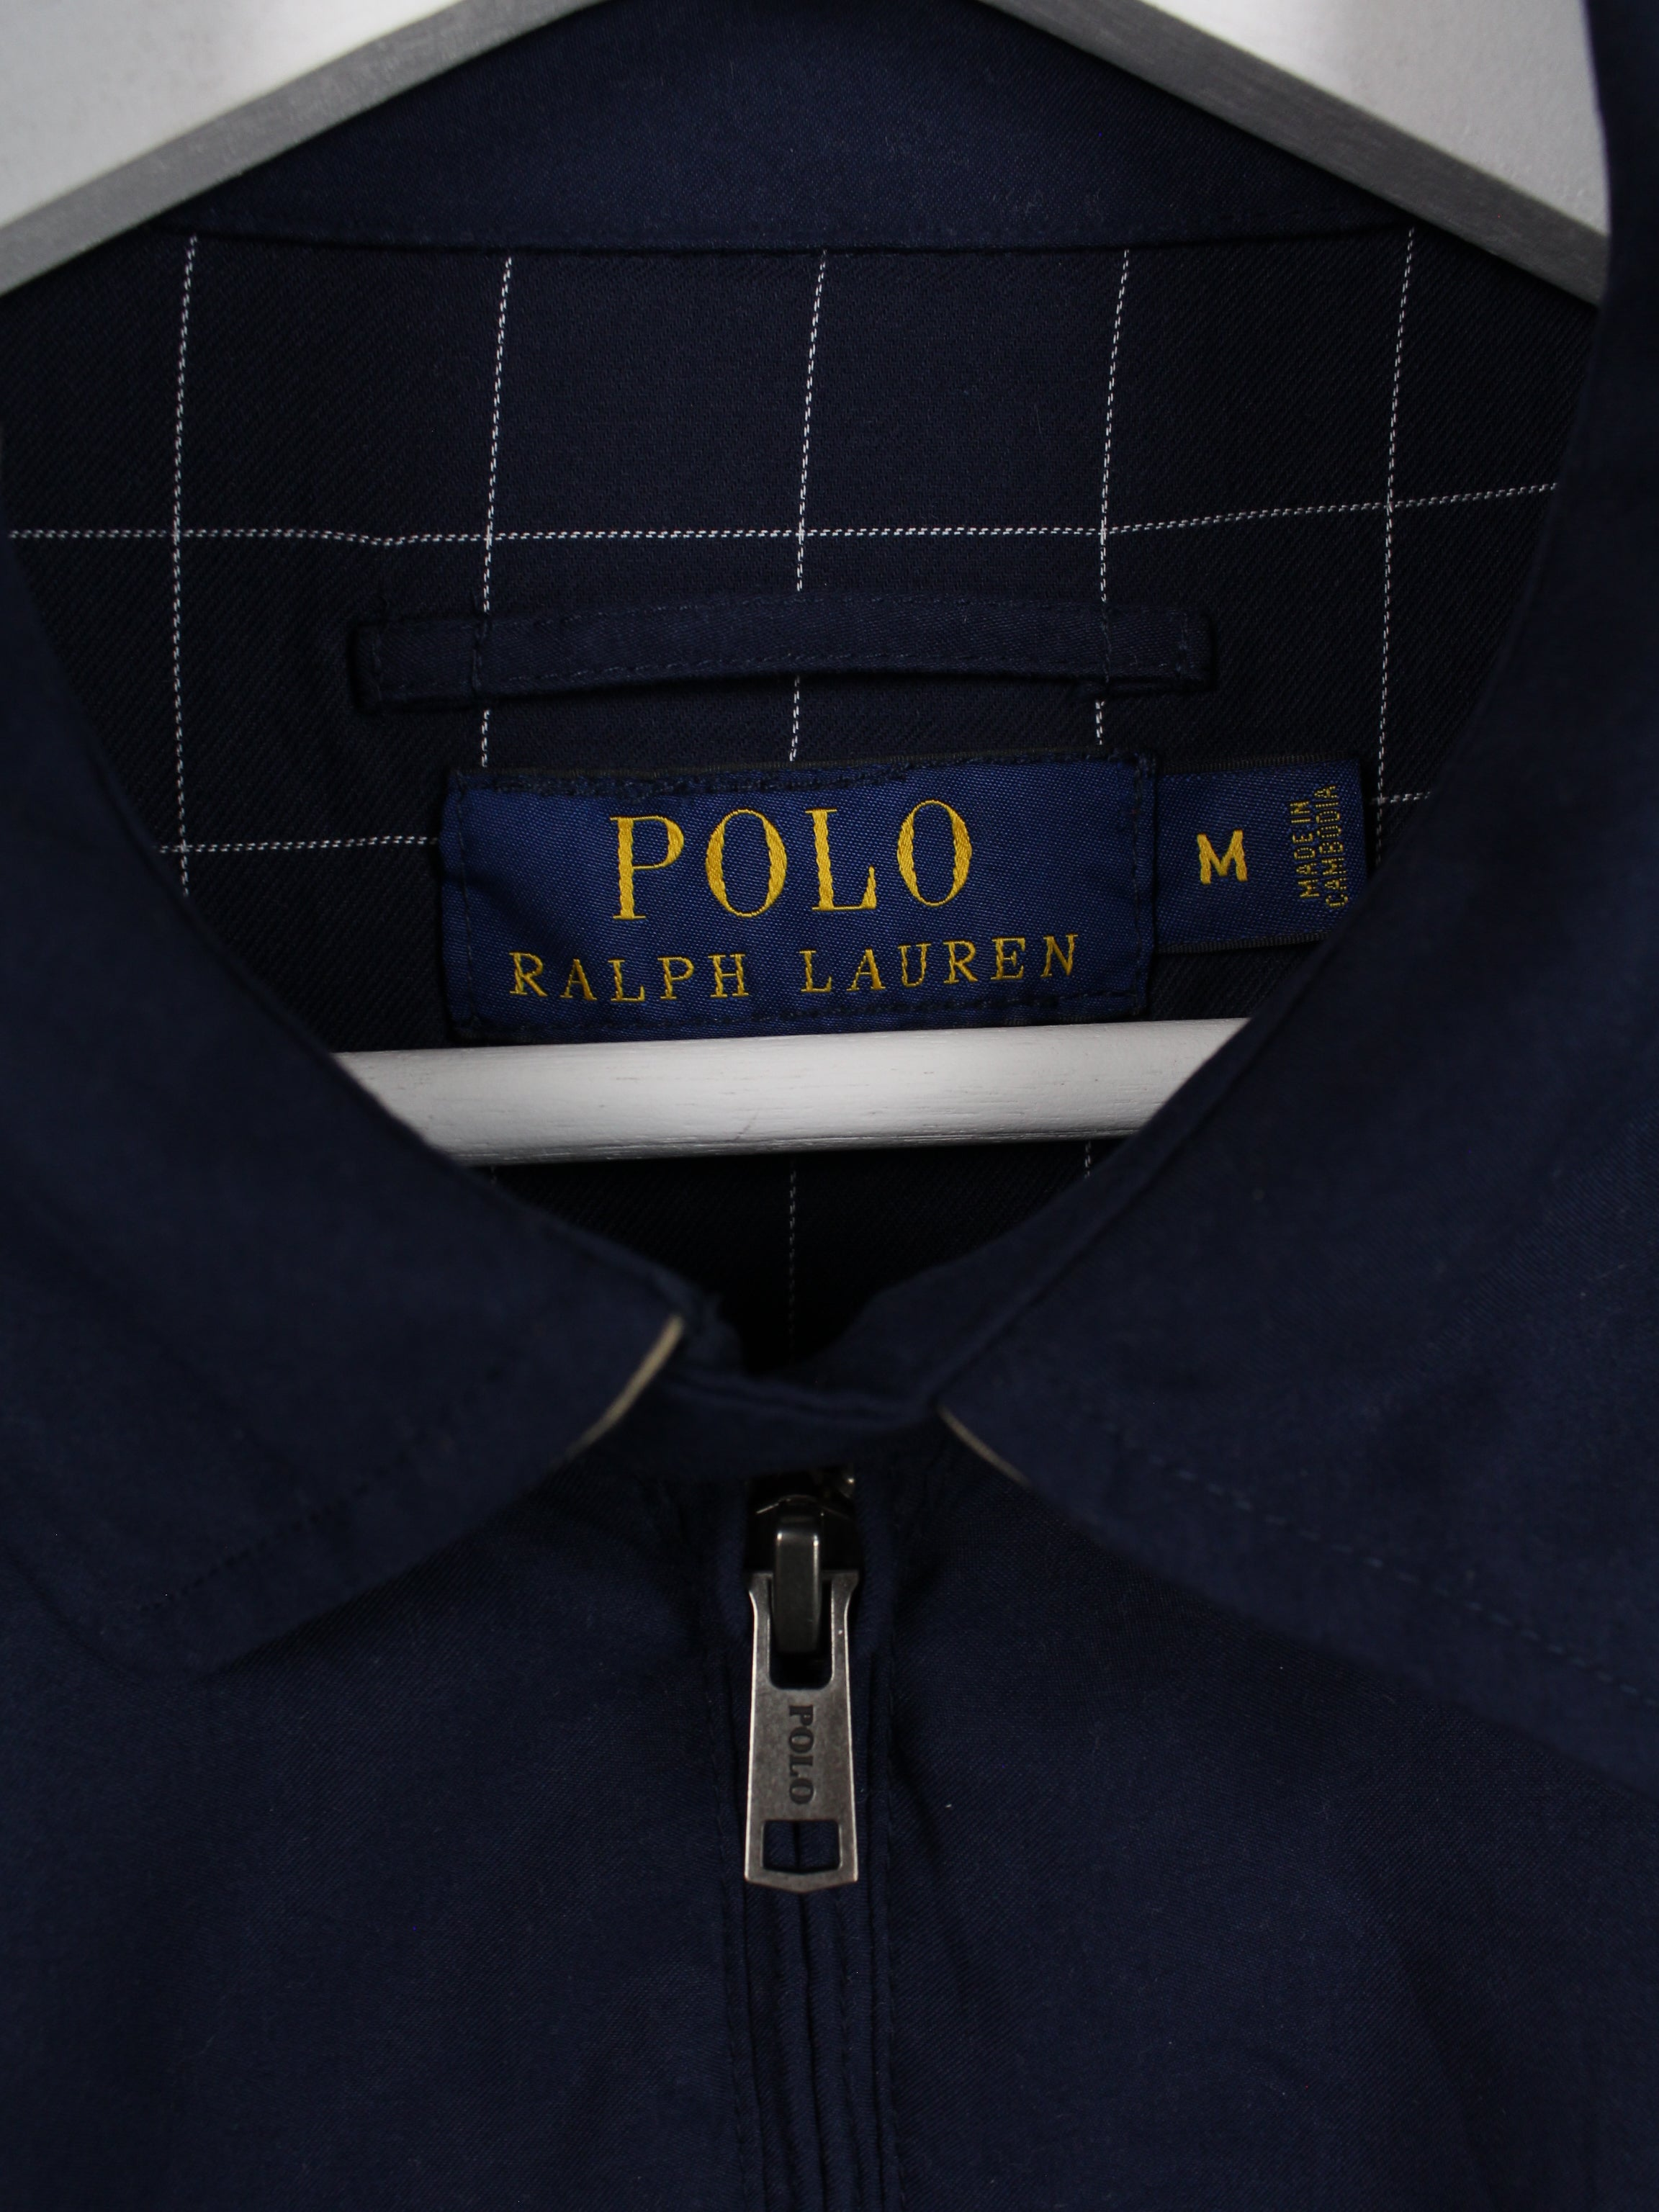 Ralph Lauren Polo Shirt Rosa M